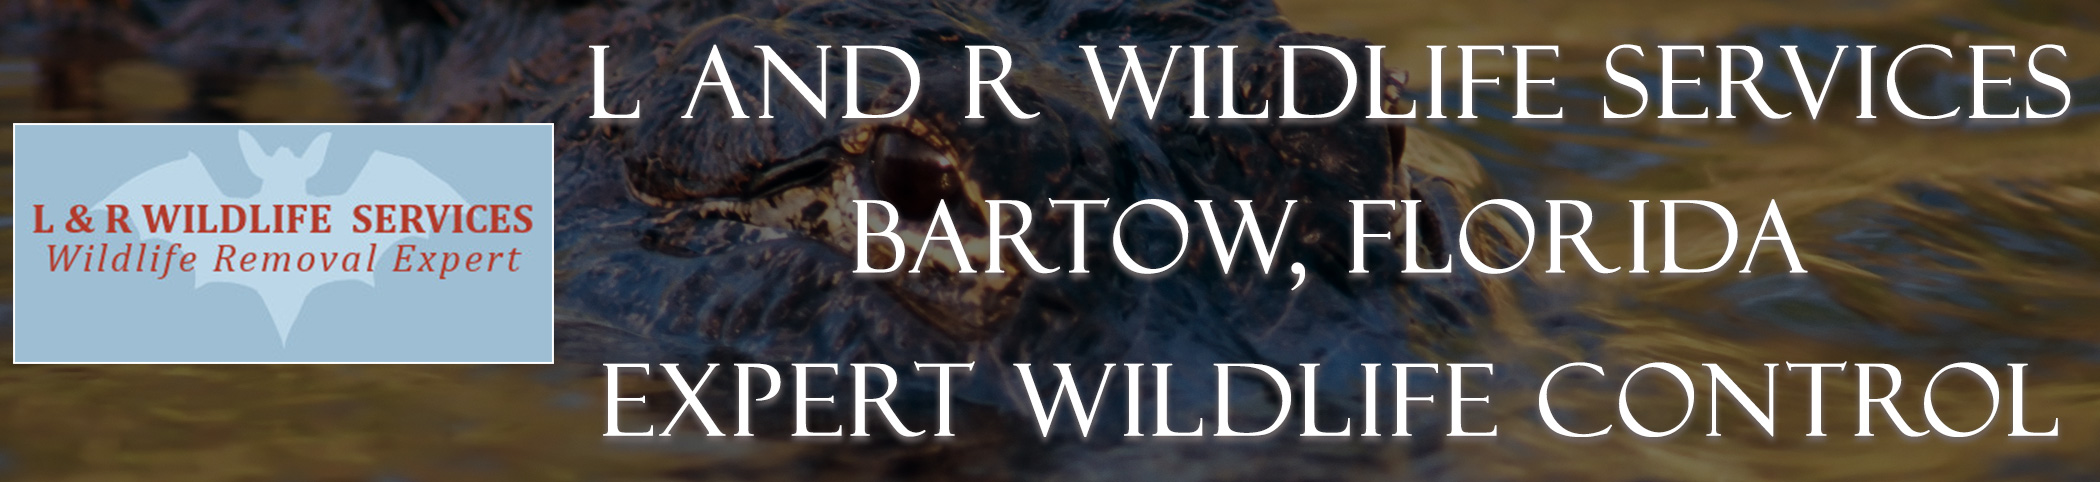 L_and_R_Wildlife_Services_bartow_floridaheaders